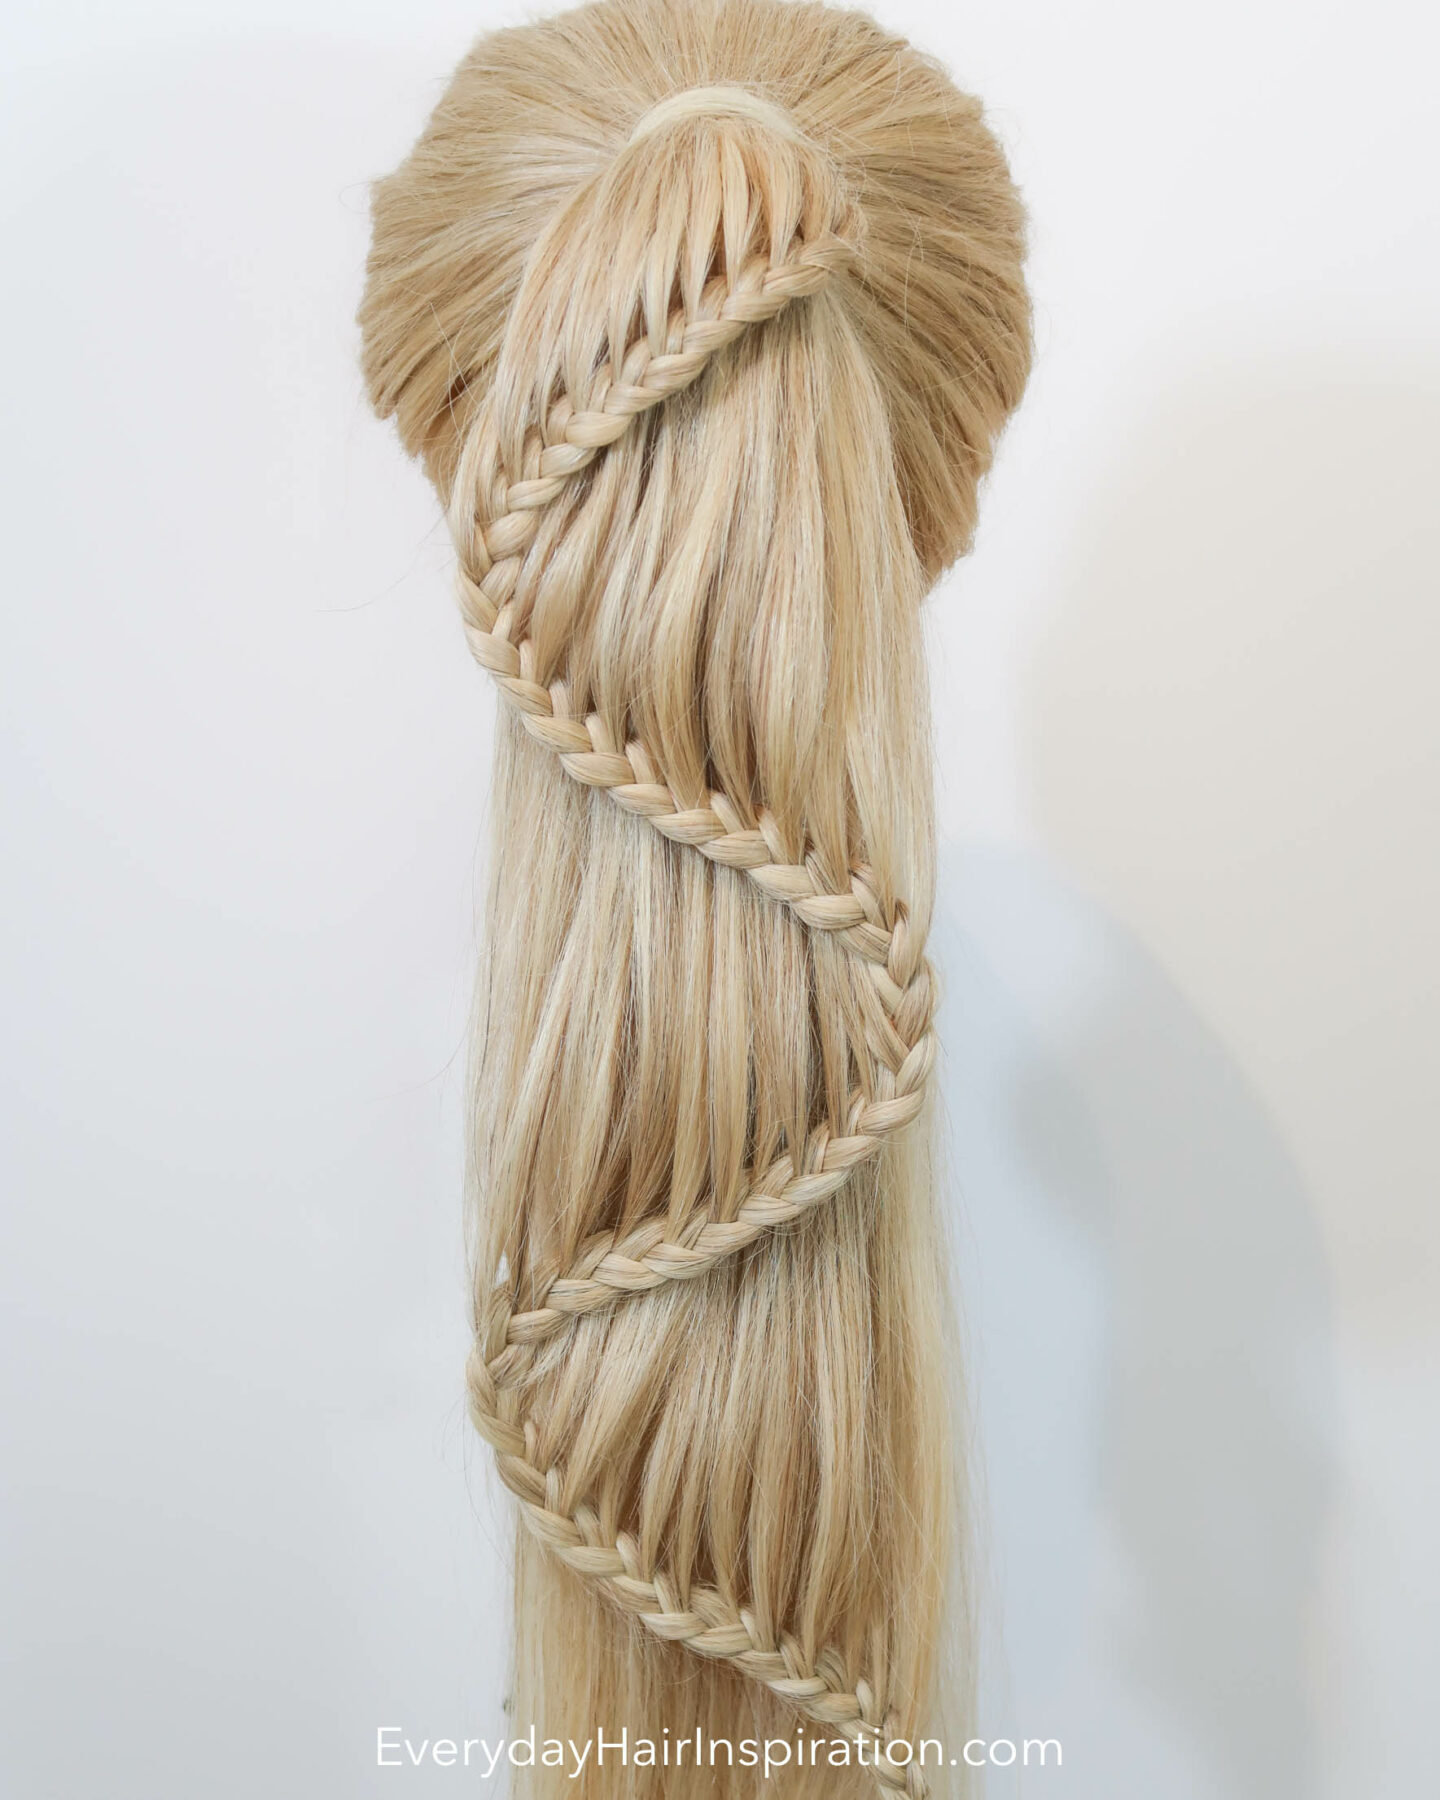 """Blonde hairdresser doll seen from the back with a high ponytail with a braid in the hair. The braid is curving like an """"s"""" shape down the hair."""